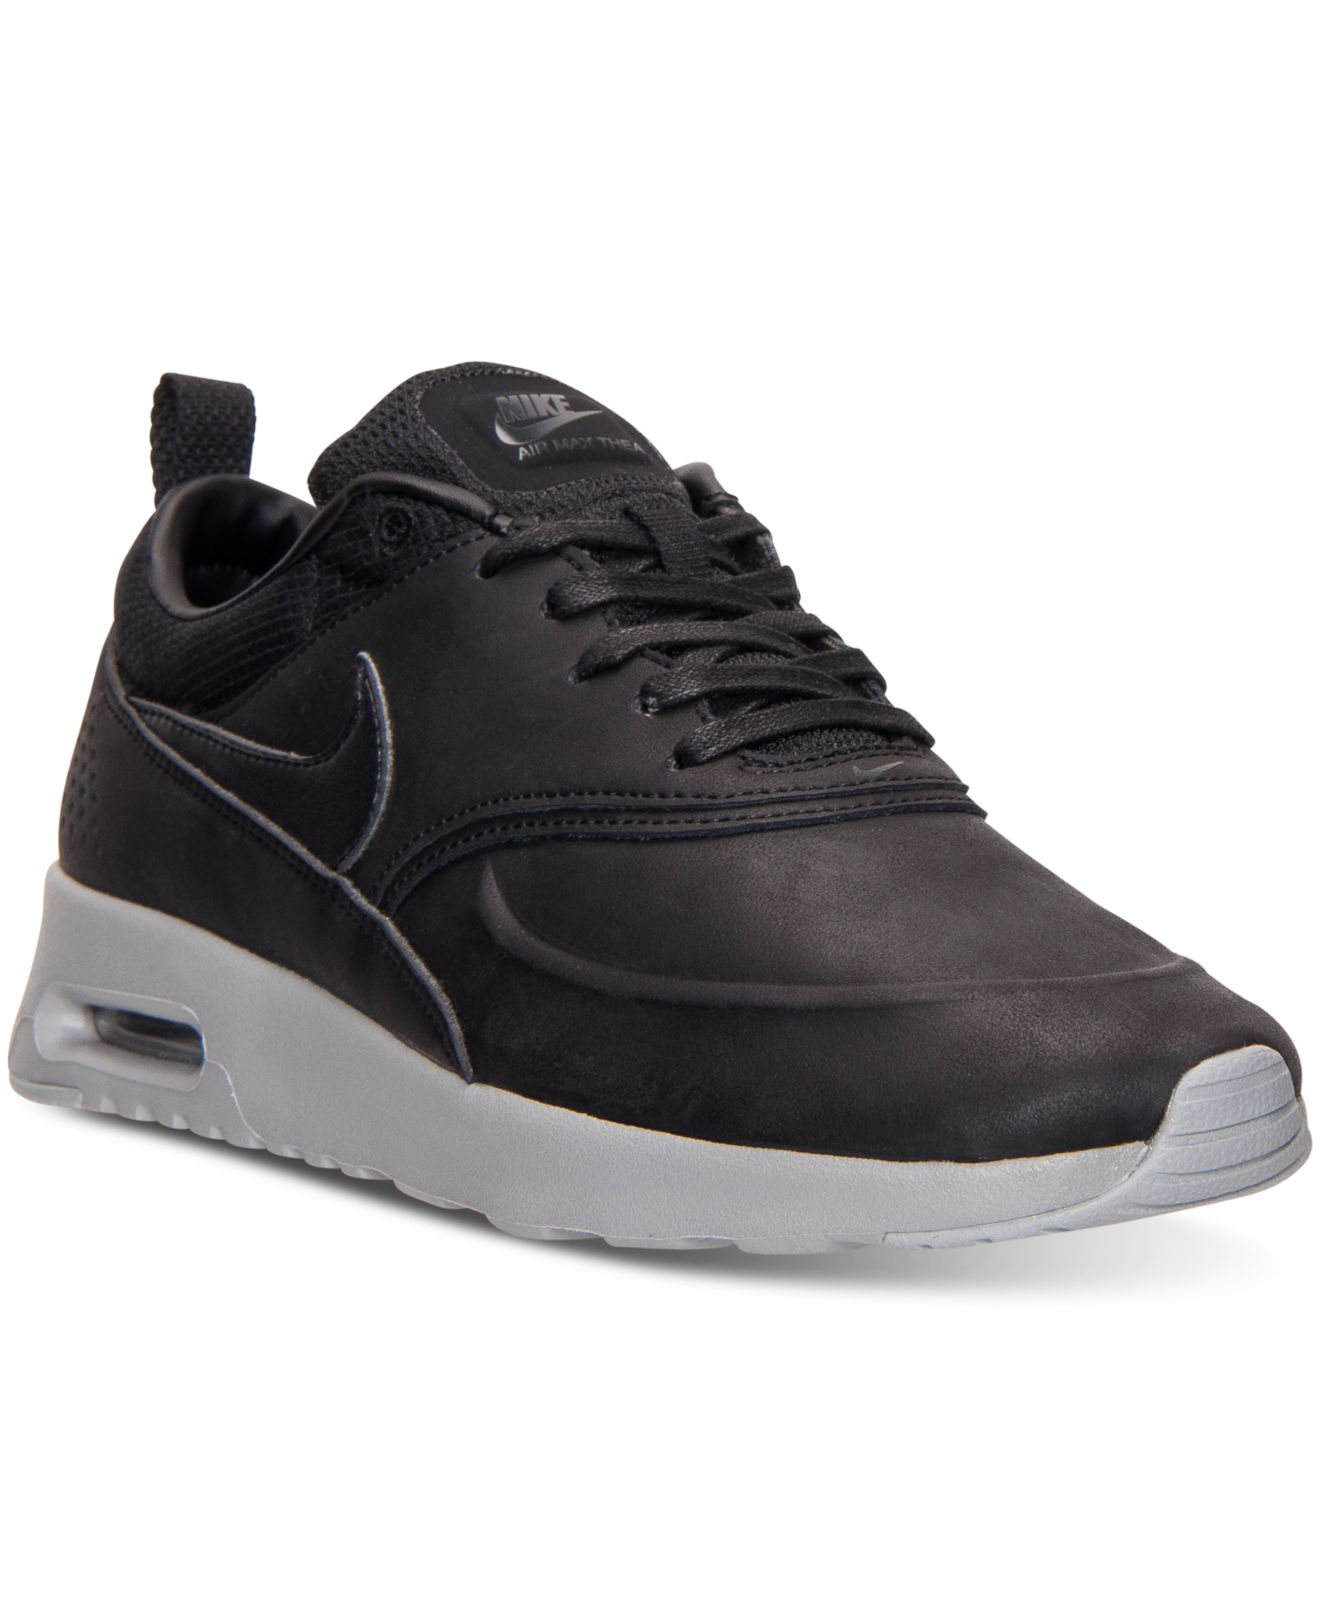 nike women 39 s air max thea premium running sneakers from. Black Bedroom Furniture Sets. Home Design Ideas